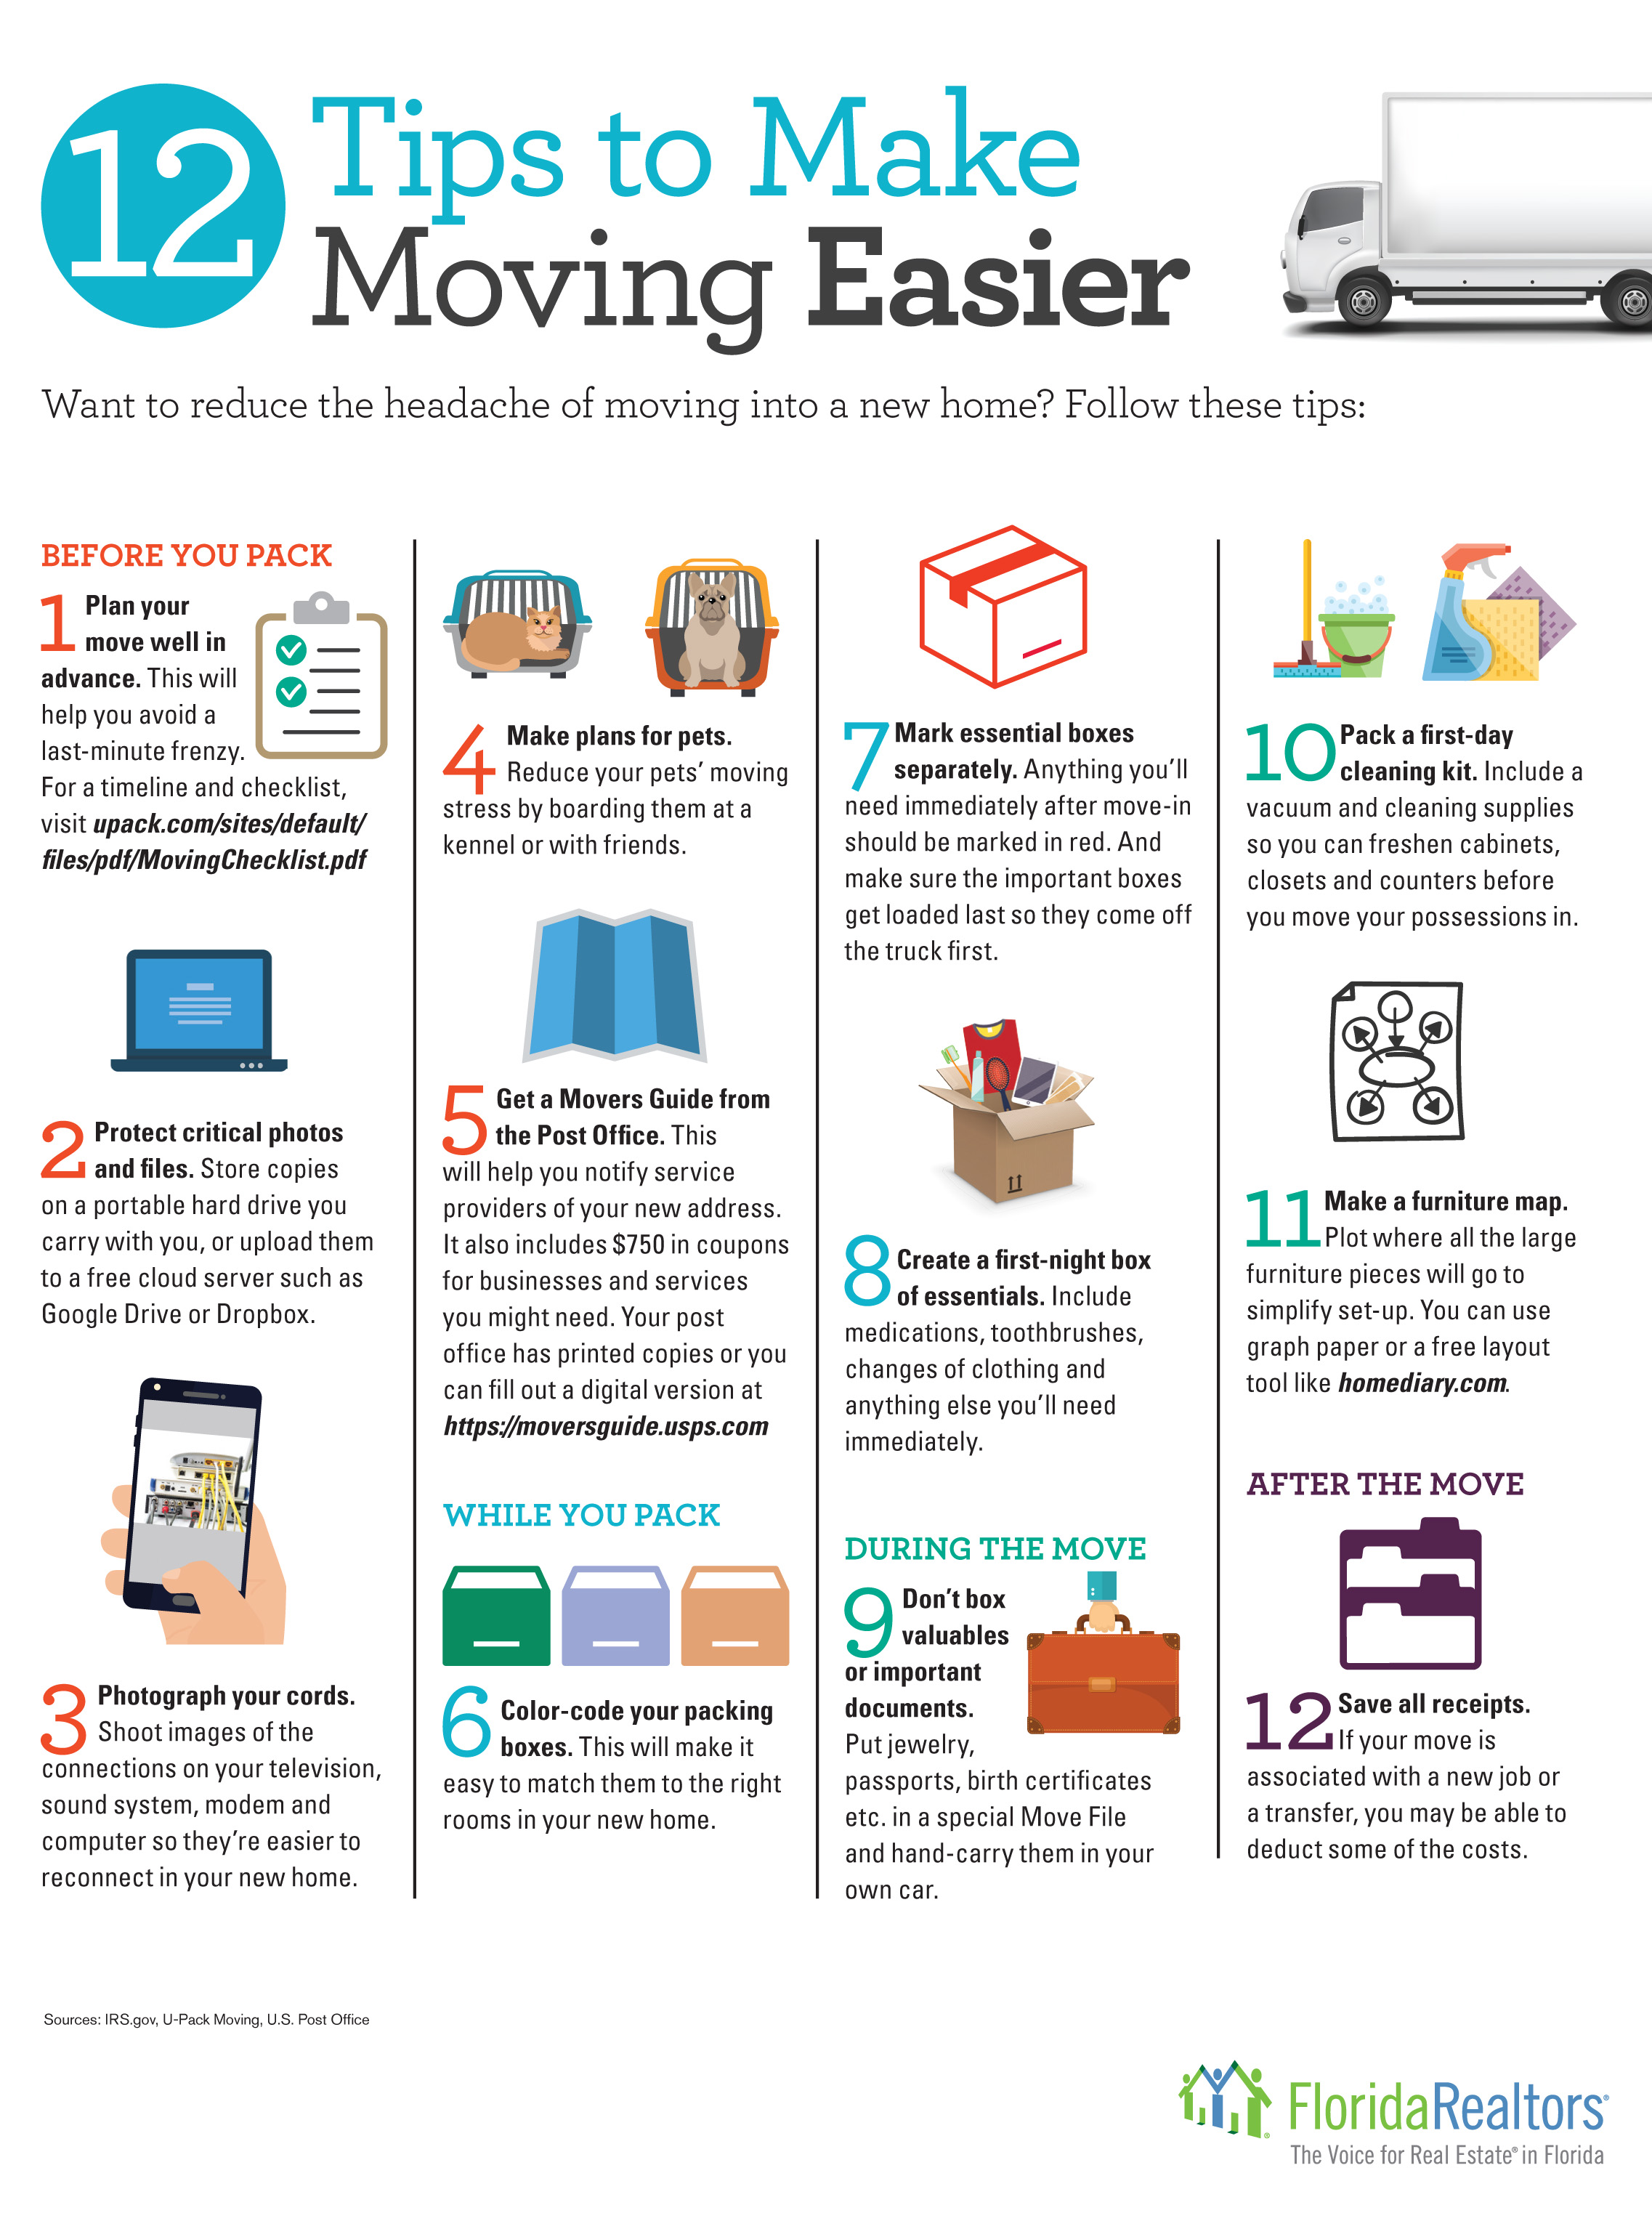 Moving Tips to make moving easier